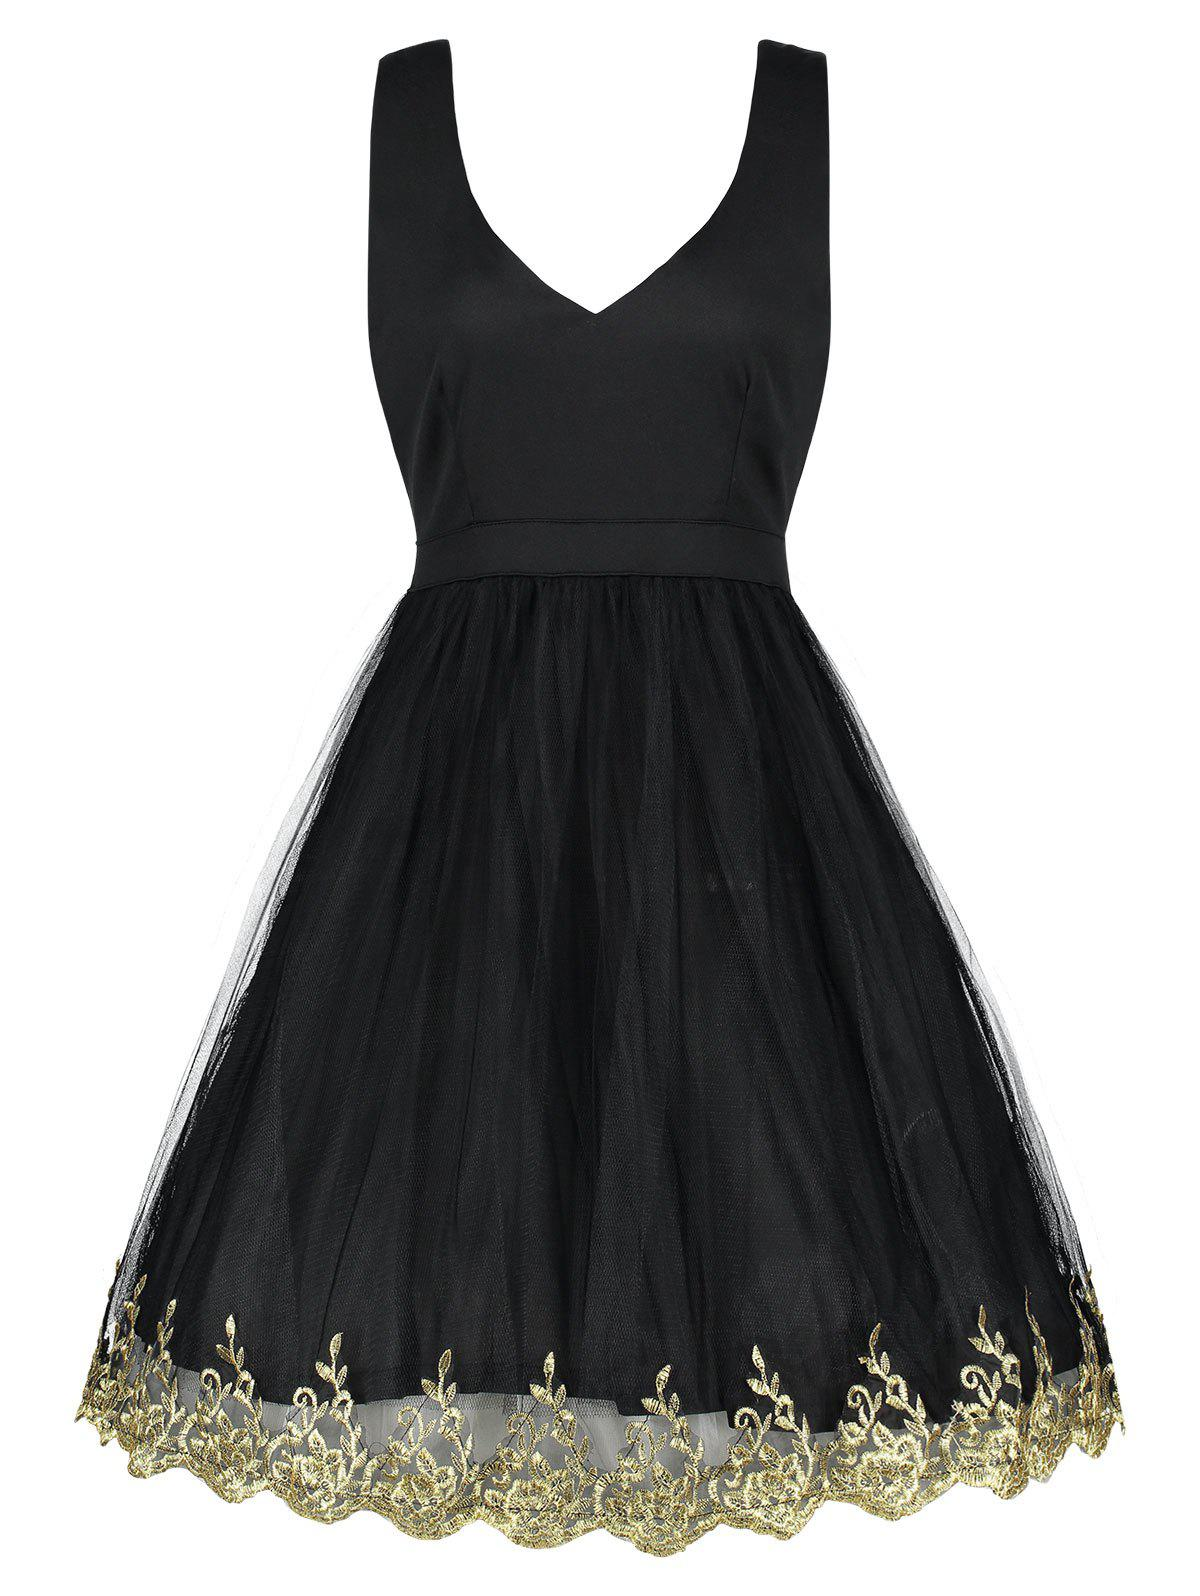 Robe Cocktail à Col en V - Noir L